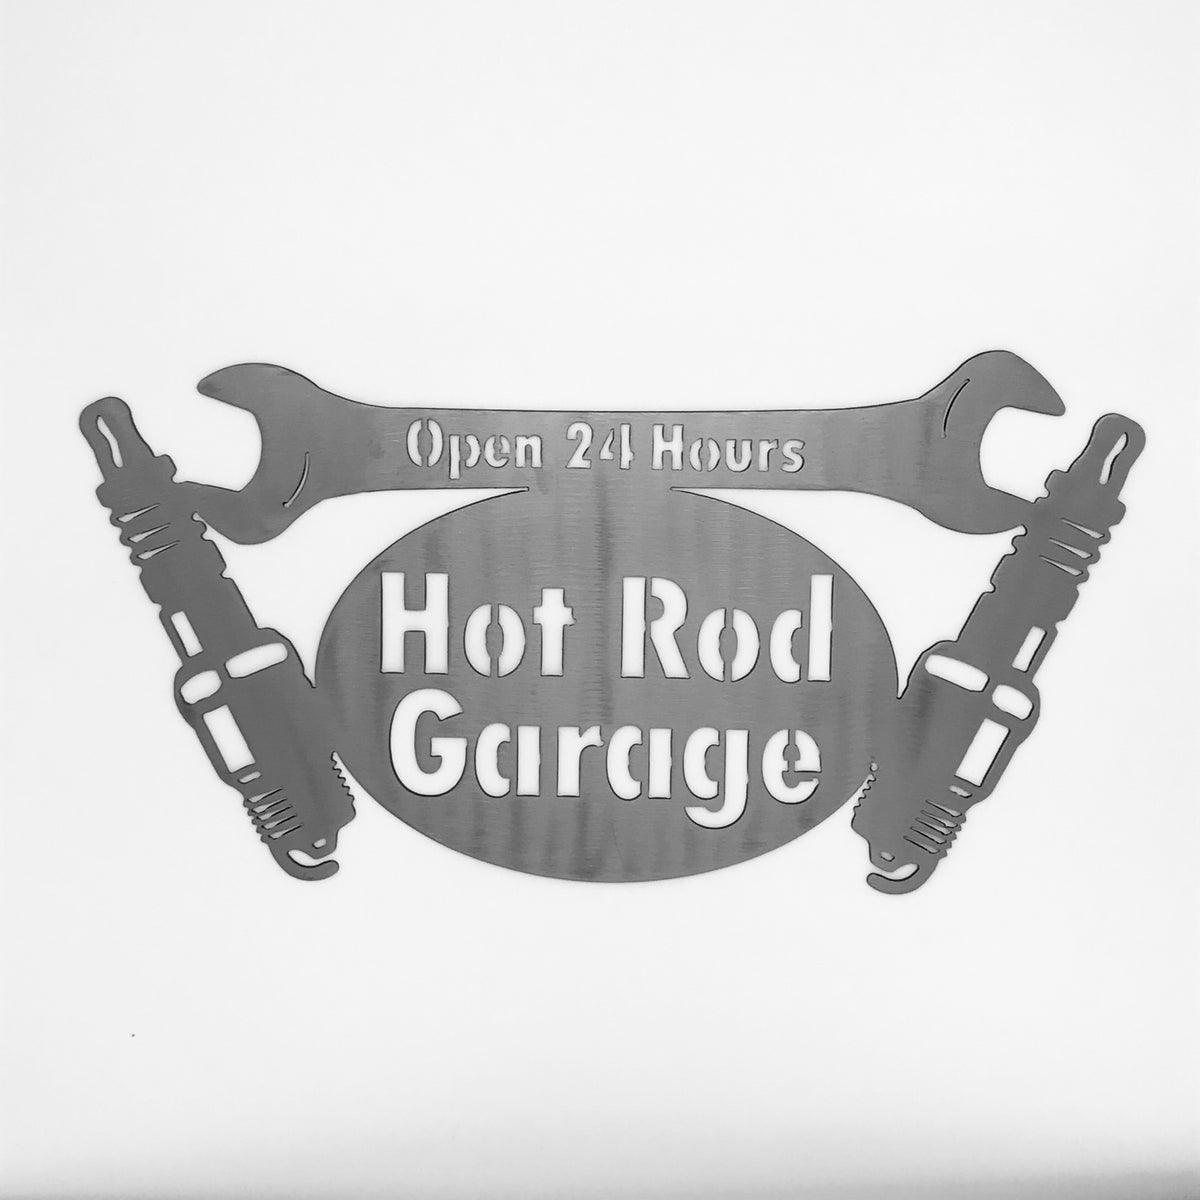 Spark Plug Hot Rod Garage